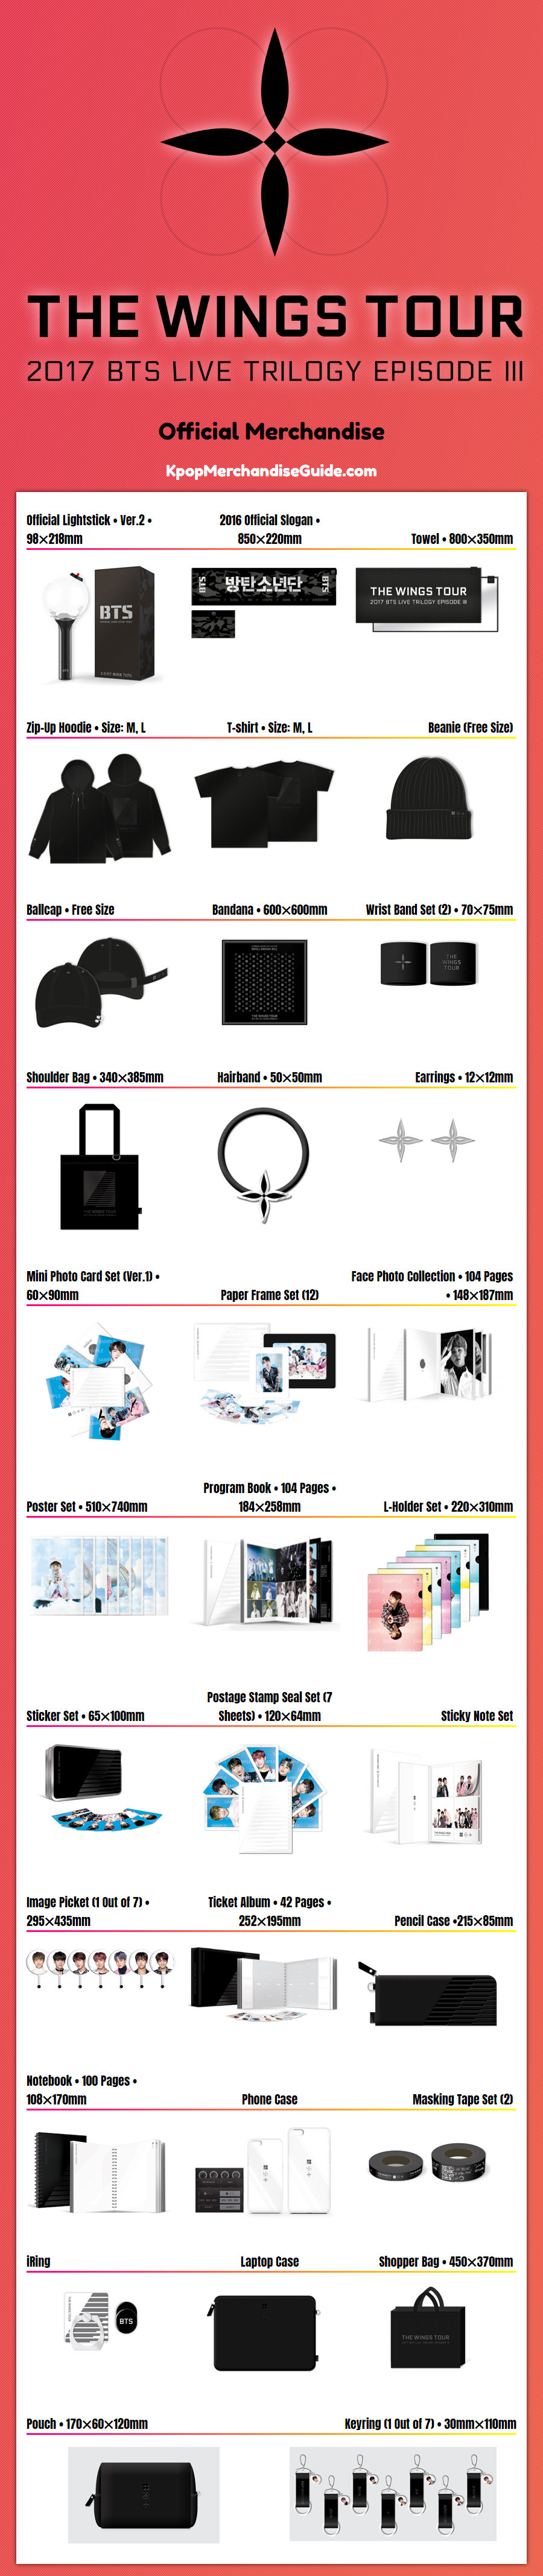 bts 2017 live trilogy episode iii the wings tour in seoul merchandise